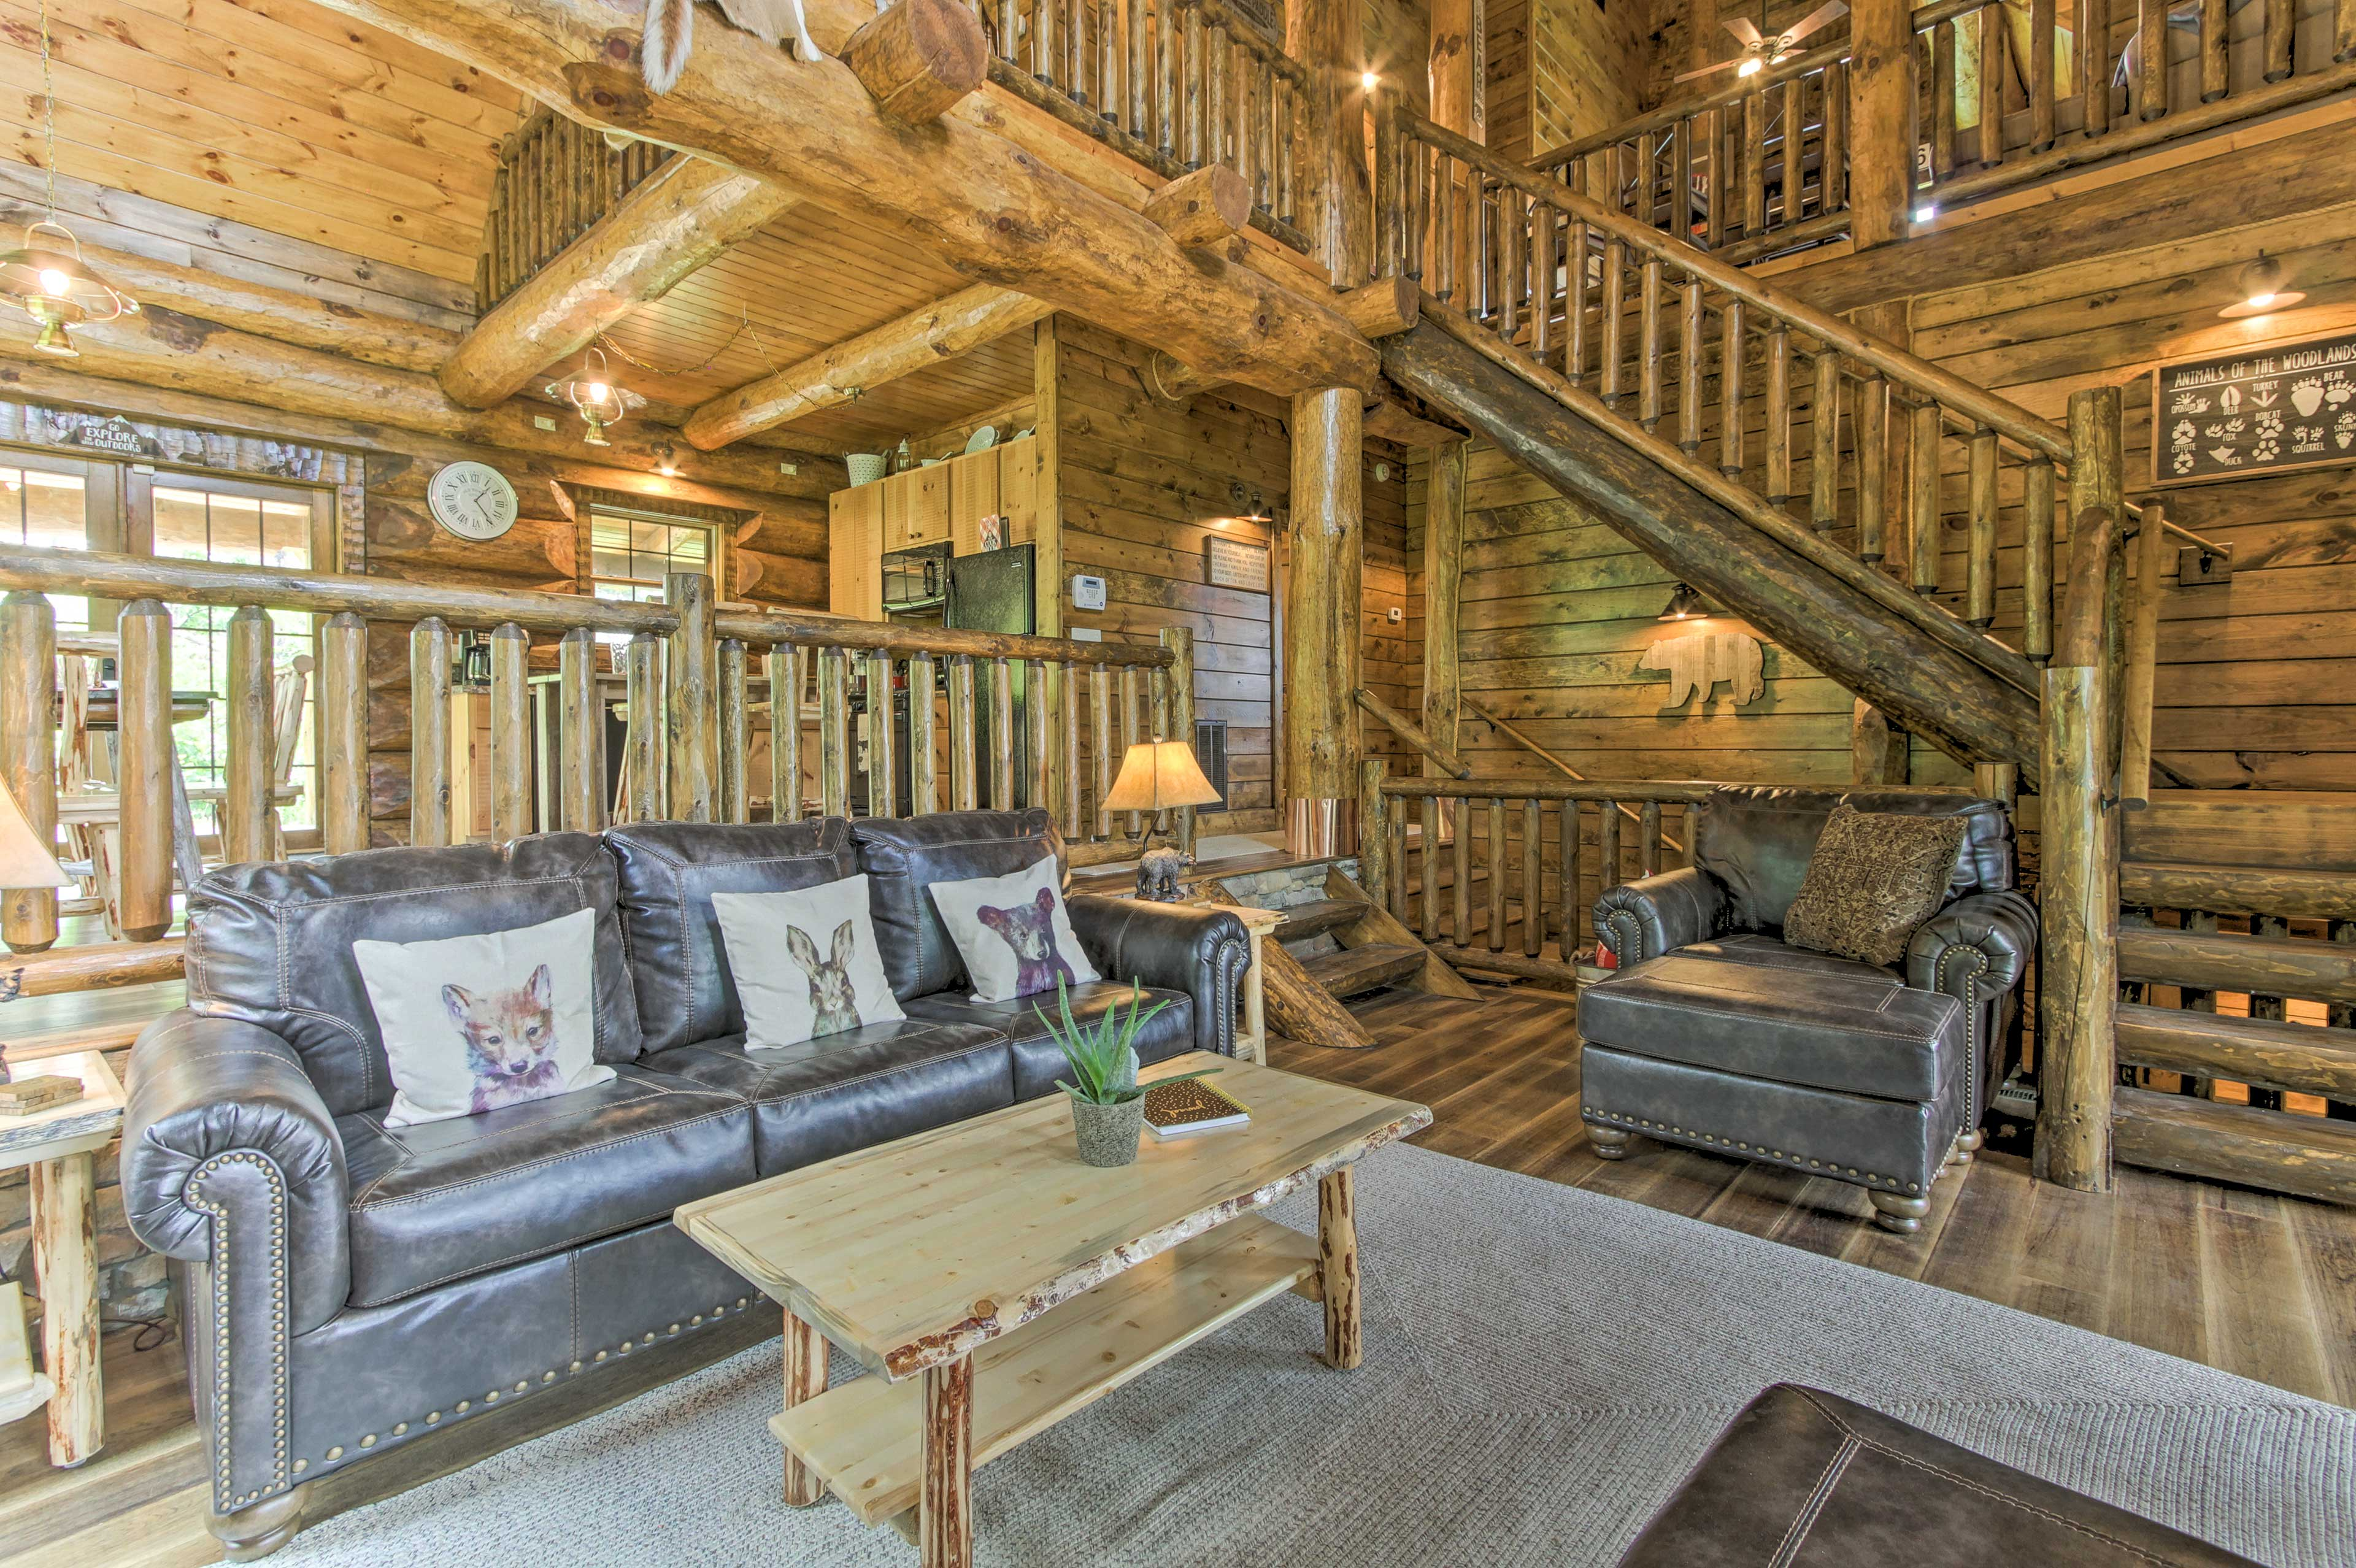 Sit back, relax, and admire the rustic decor.